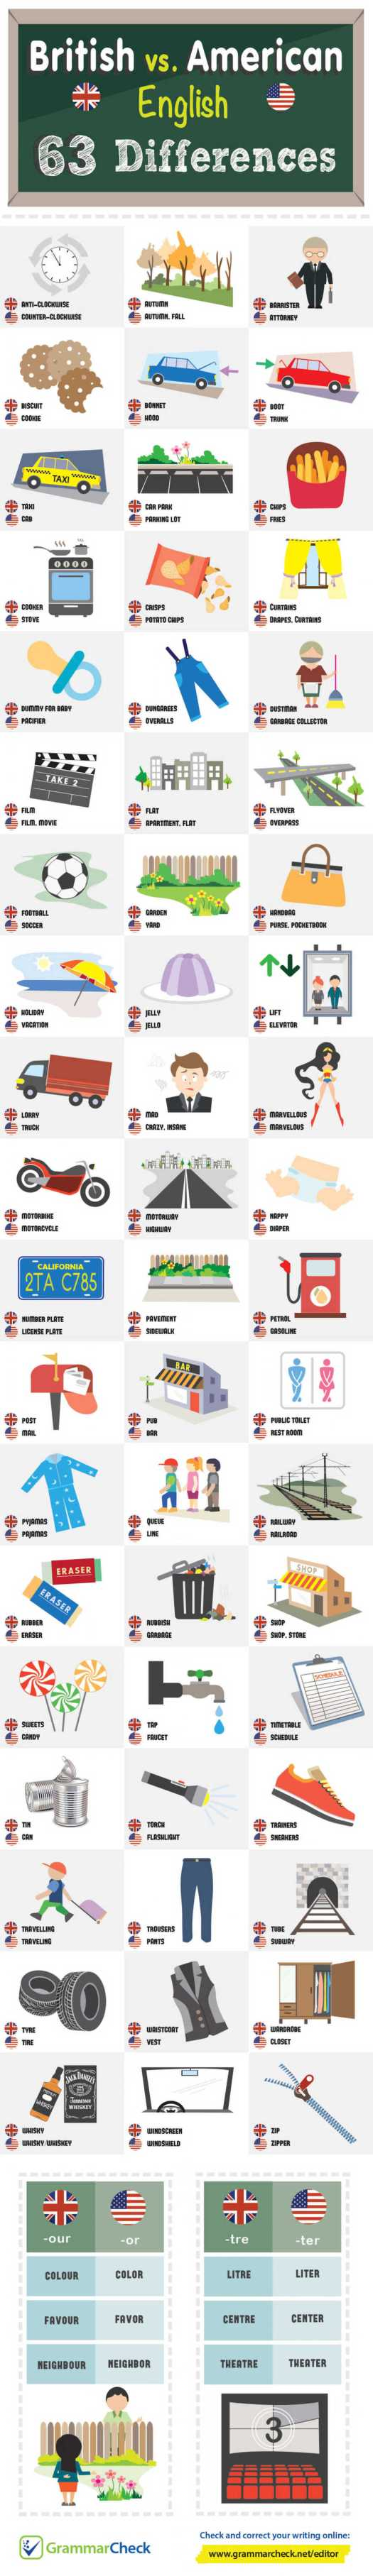 Differences Between British and American English Infographic by Grammar Check